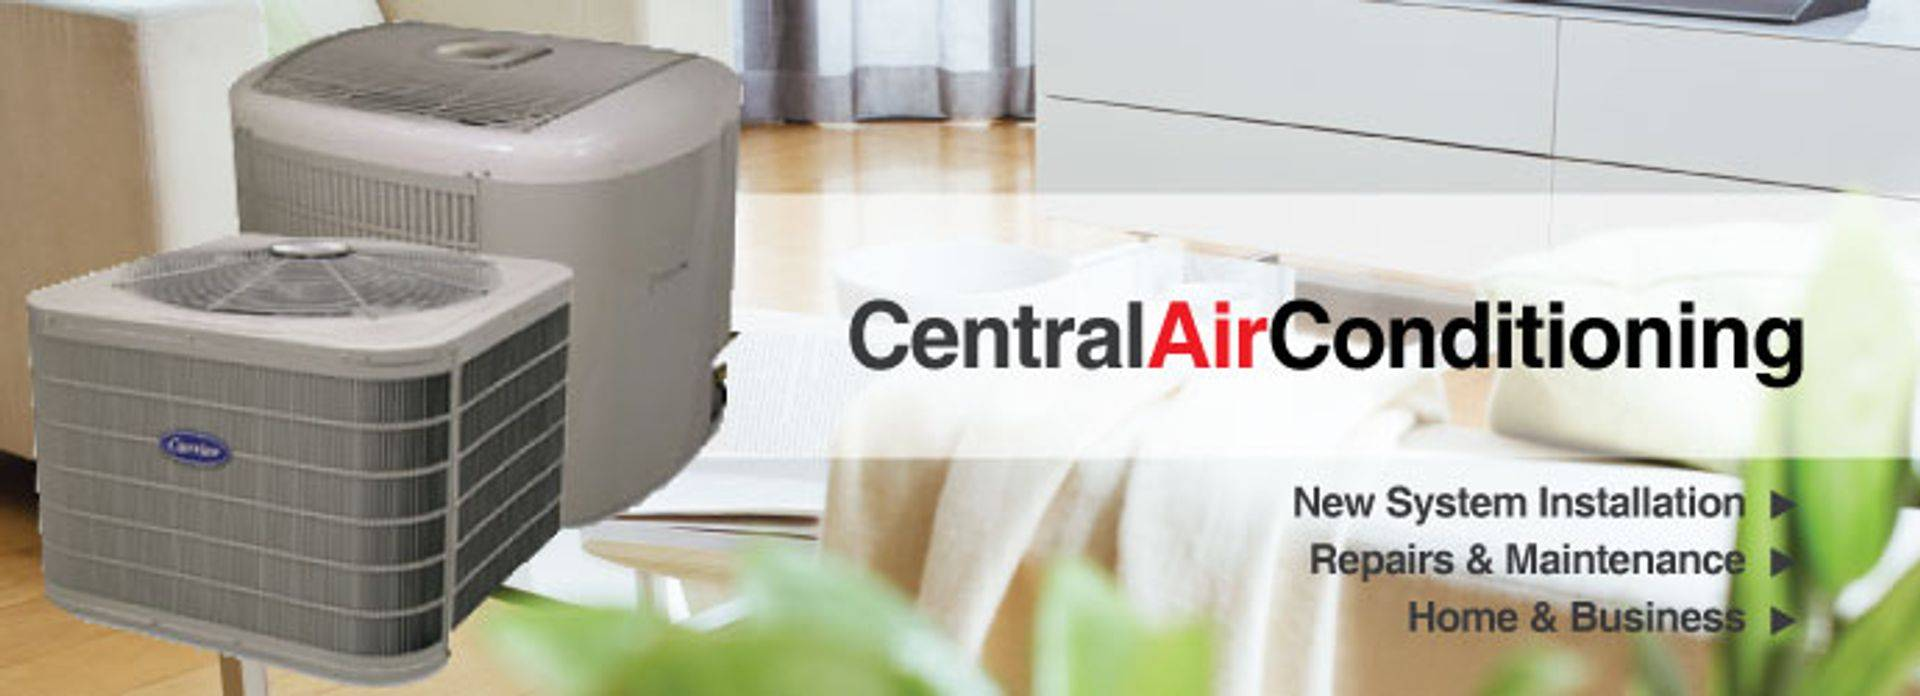 Heat and AC Repairs, Installations, and Maintenance